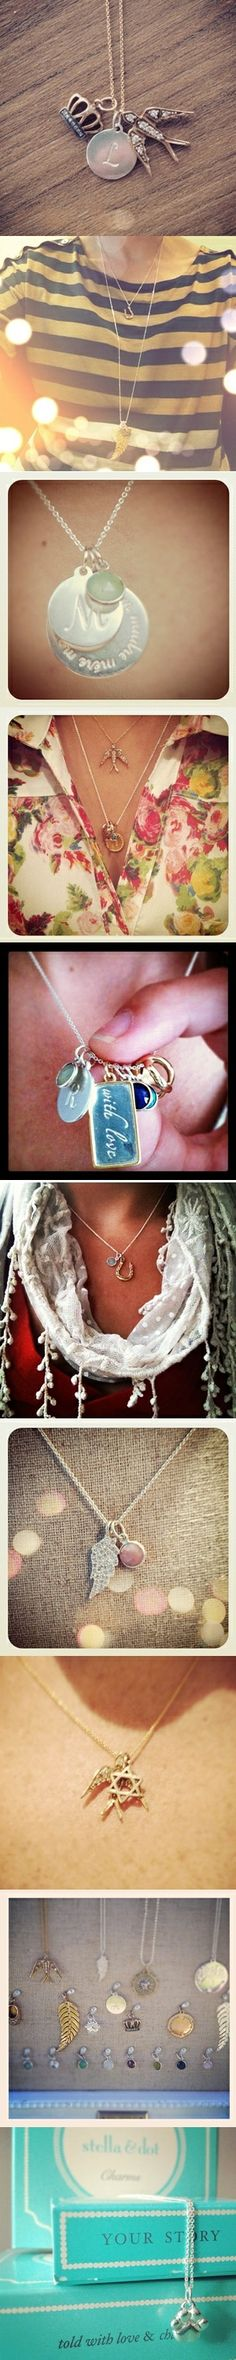 Fab gift idea: Personalized charm necklaces from Stella & Dot. Charms starting at $18